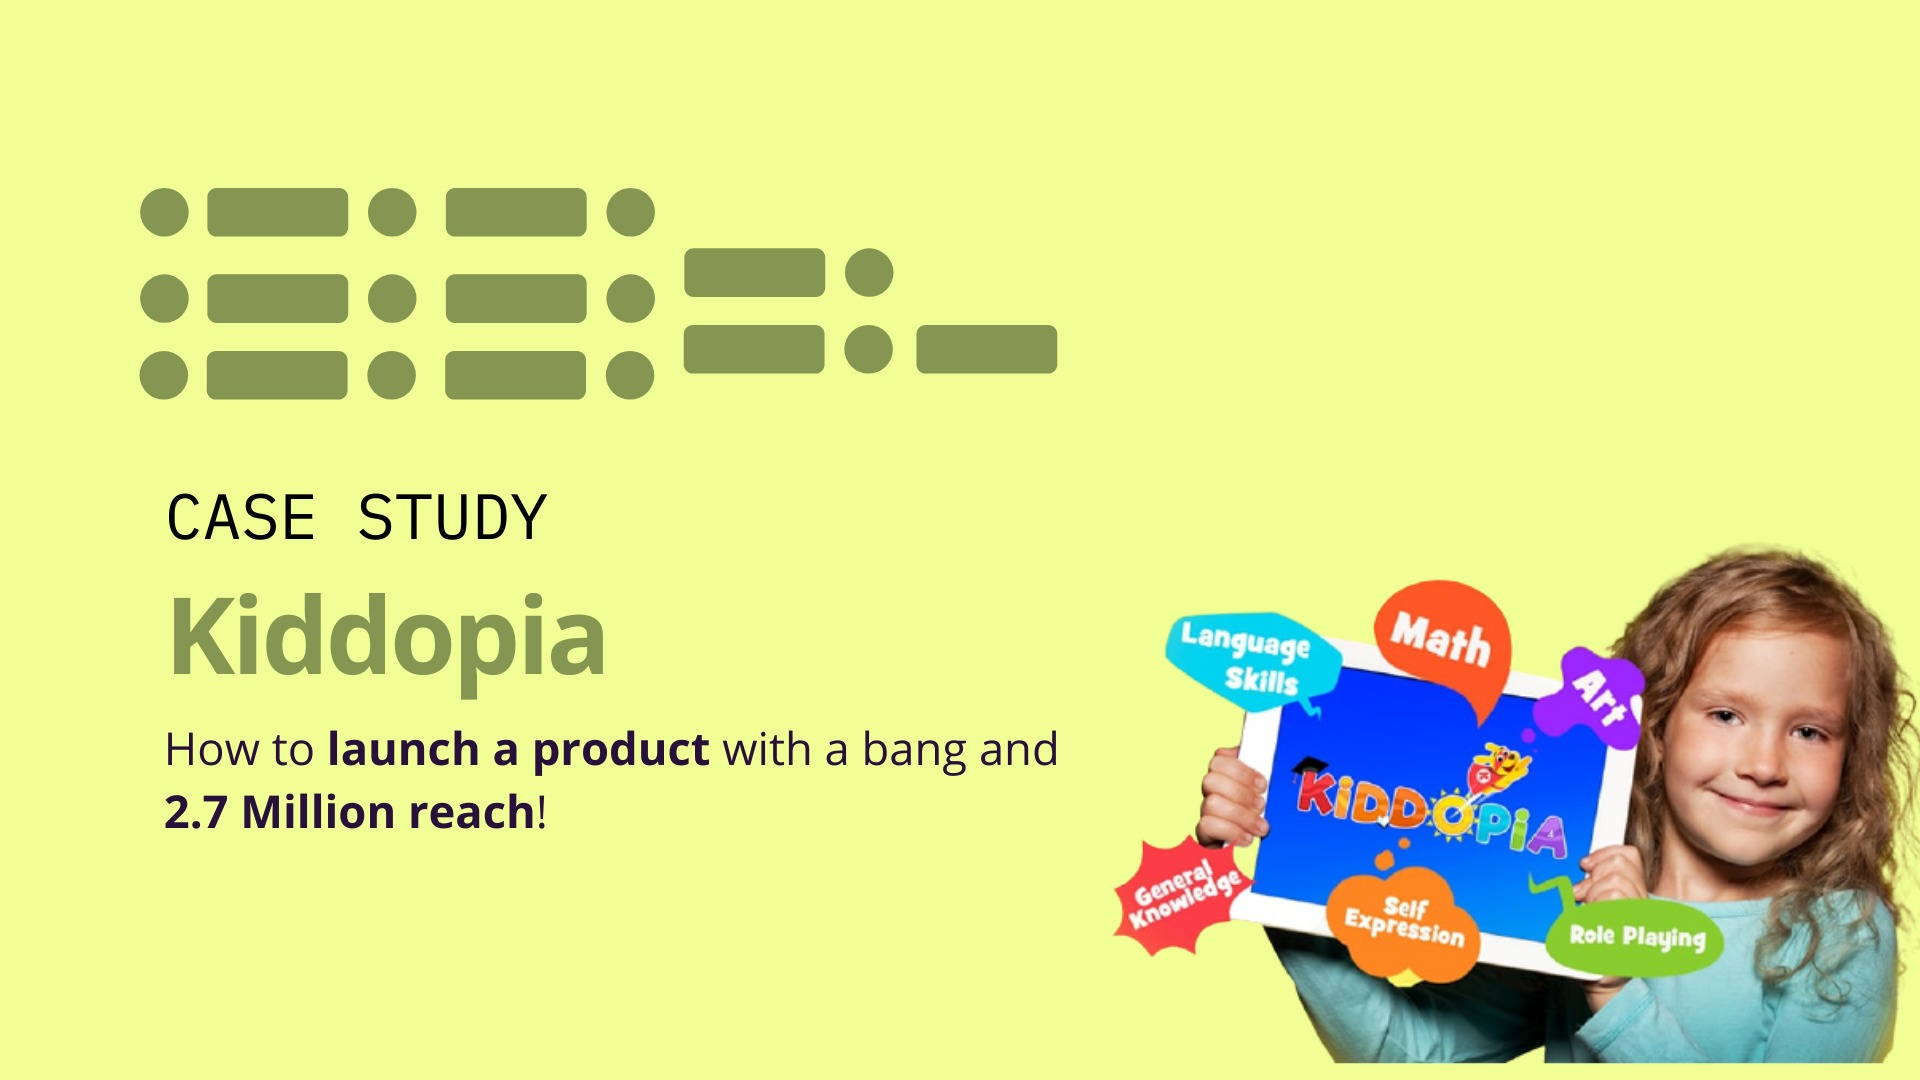 Kiddopia : How to launch a product with a bang and 2.7 Million reach! image